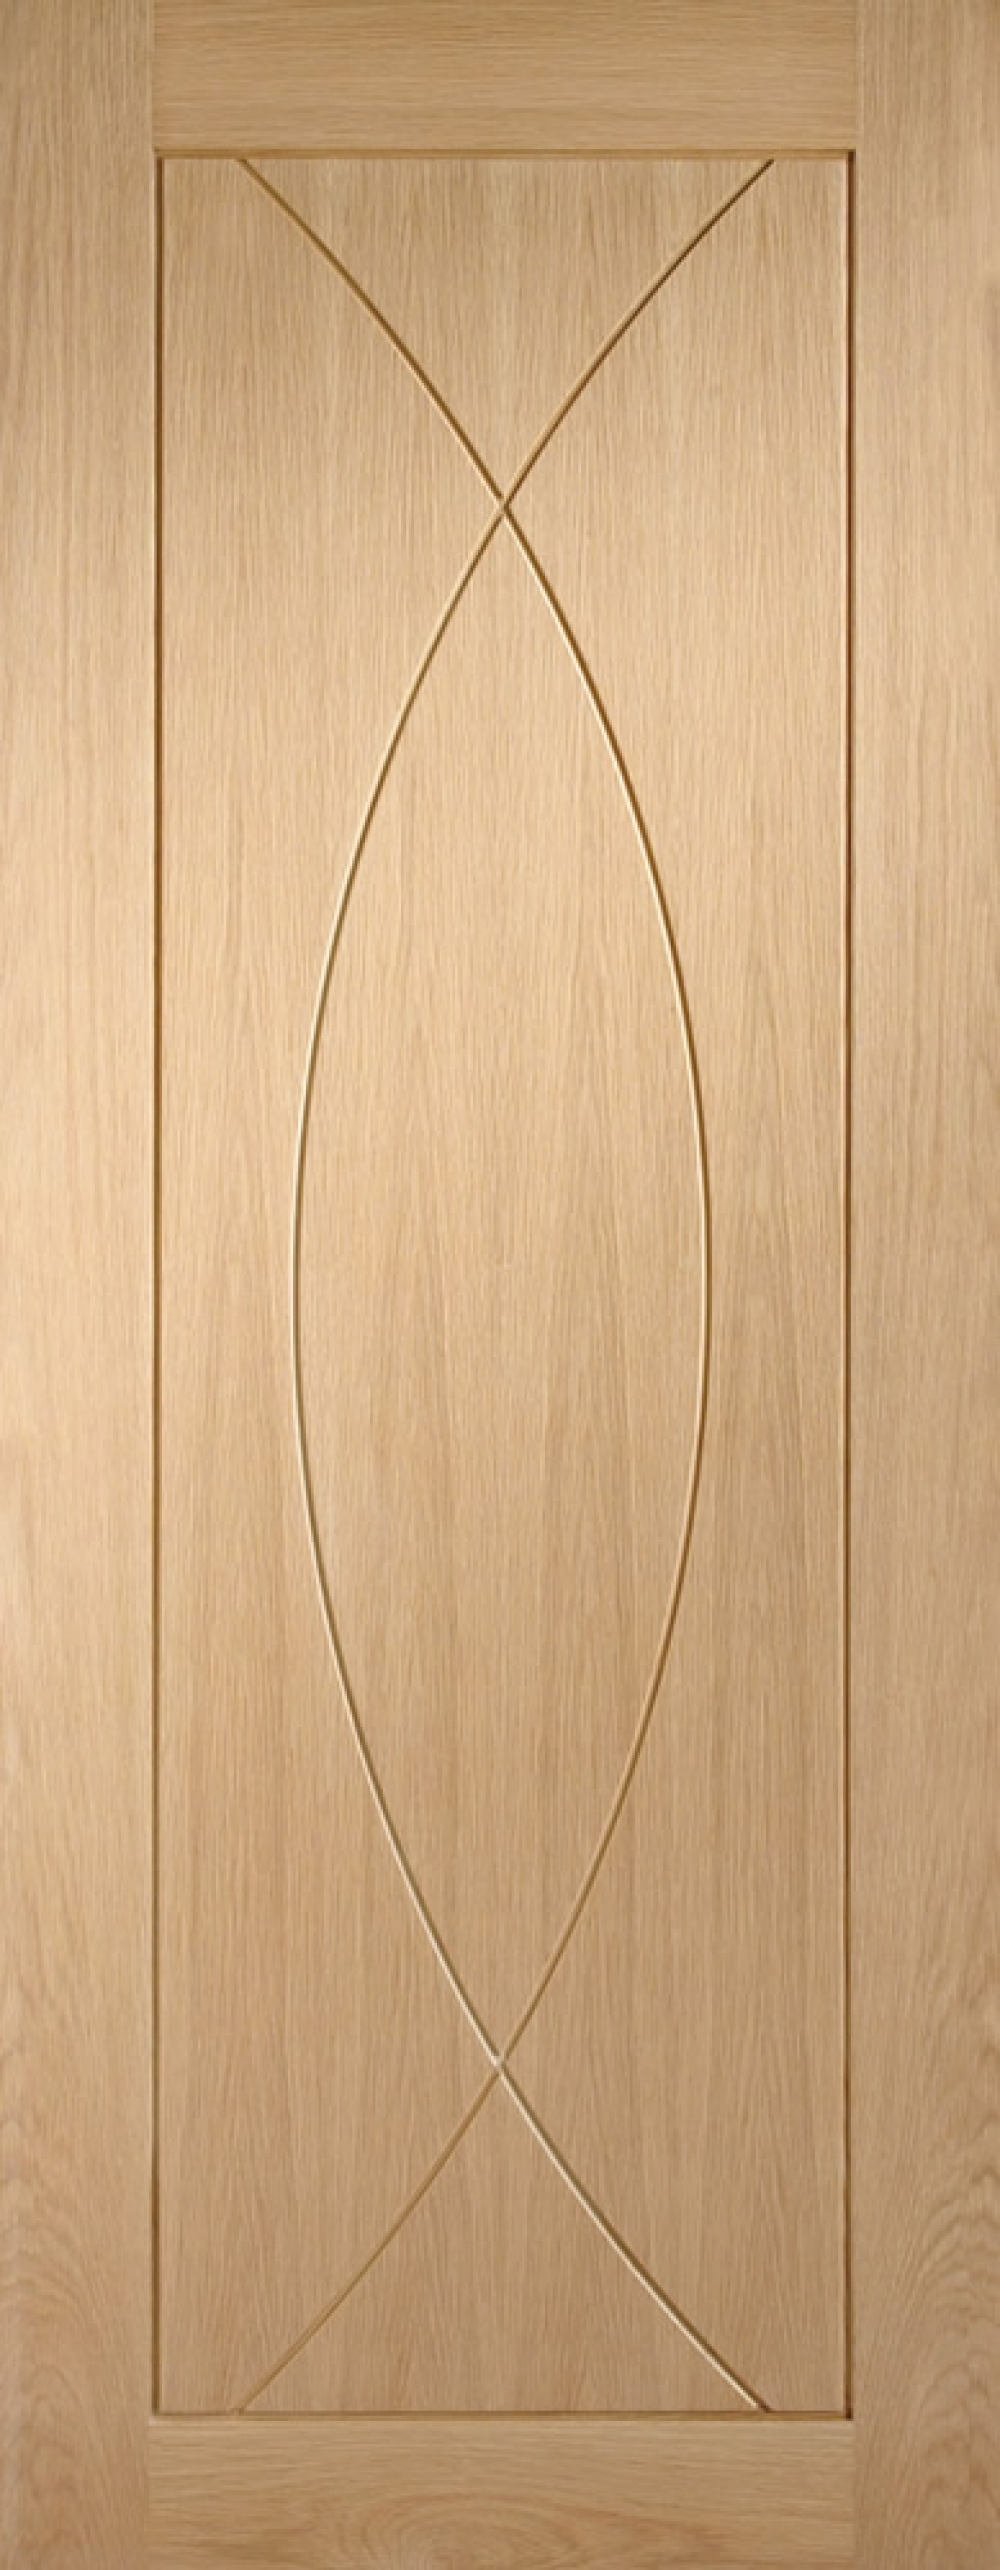 Pesaro Oak Door - PREFINISHED